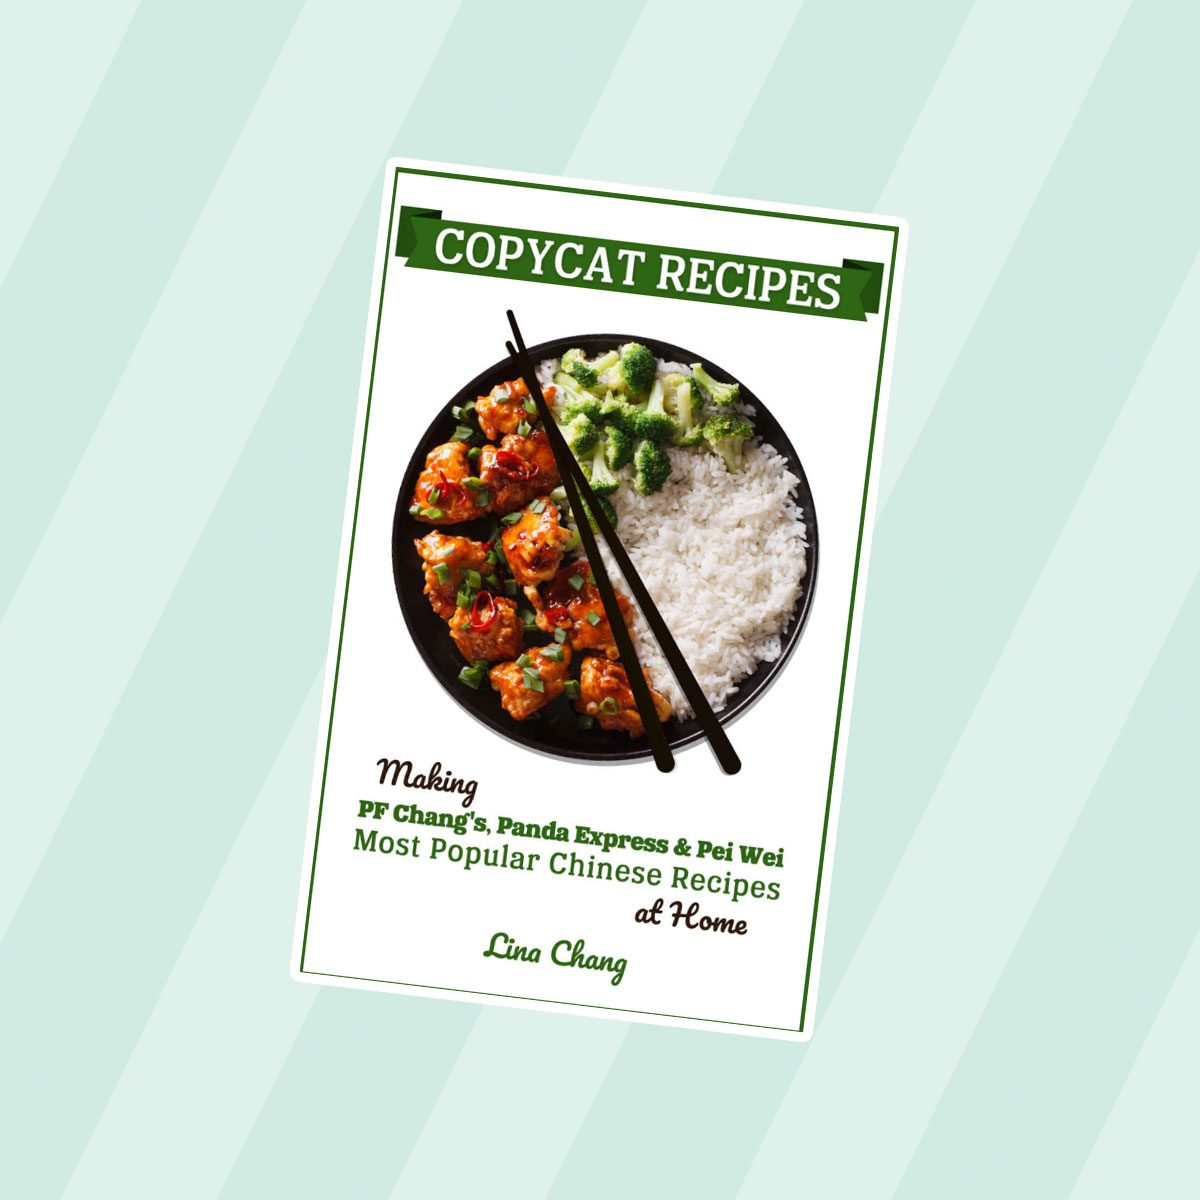 Copycat Recipes: Making PF Chang's Panda Express & Pei Wei at Home